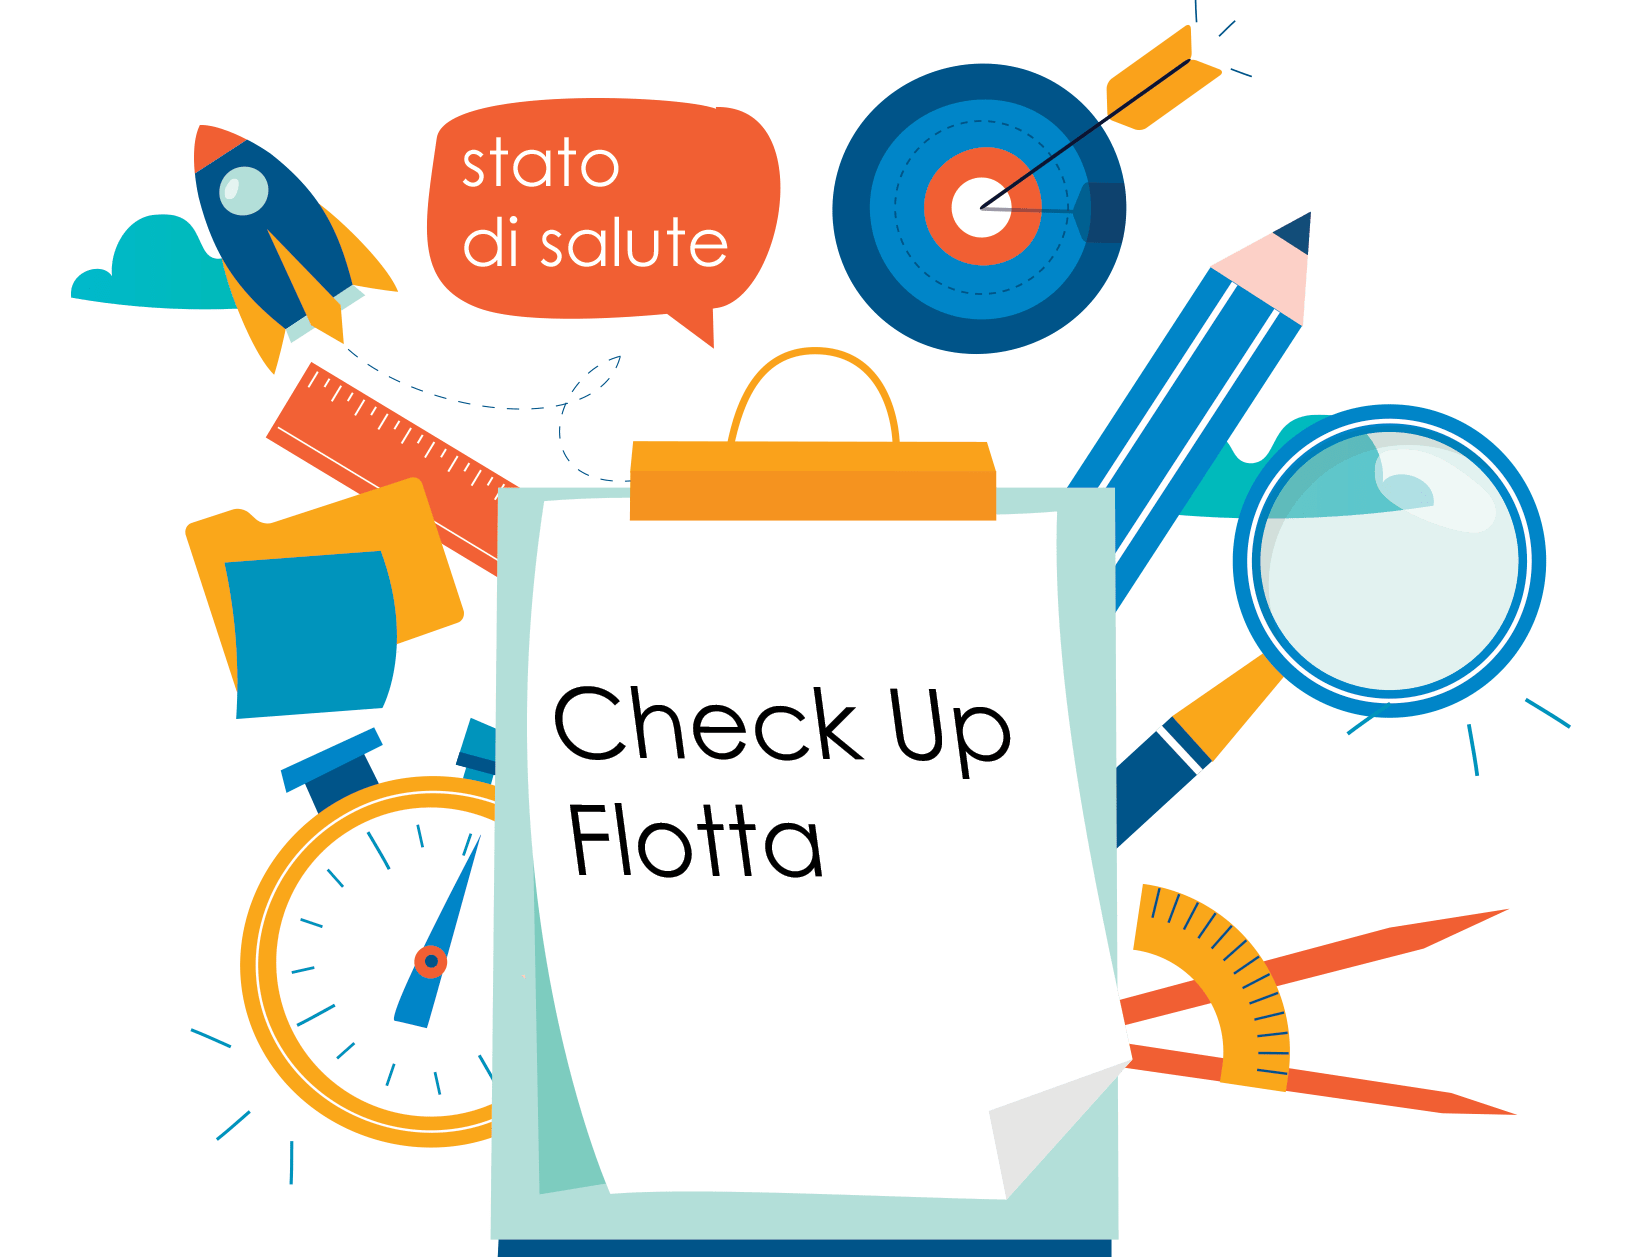 check up flotta